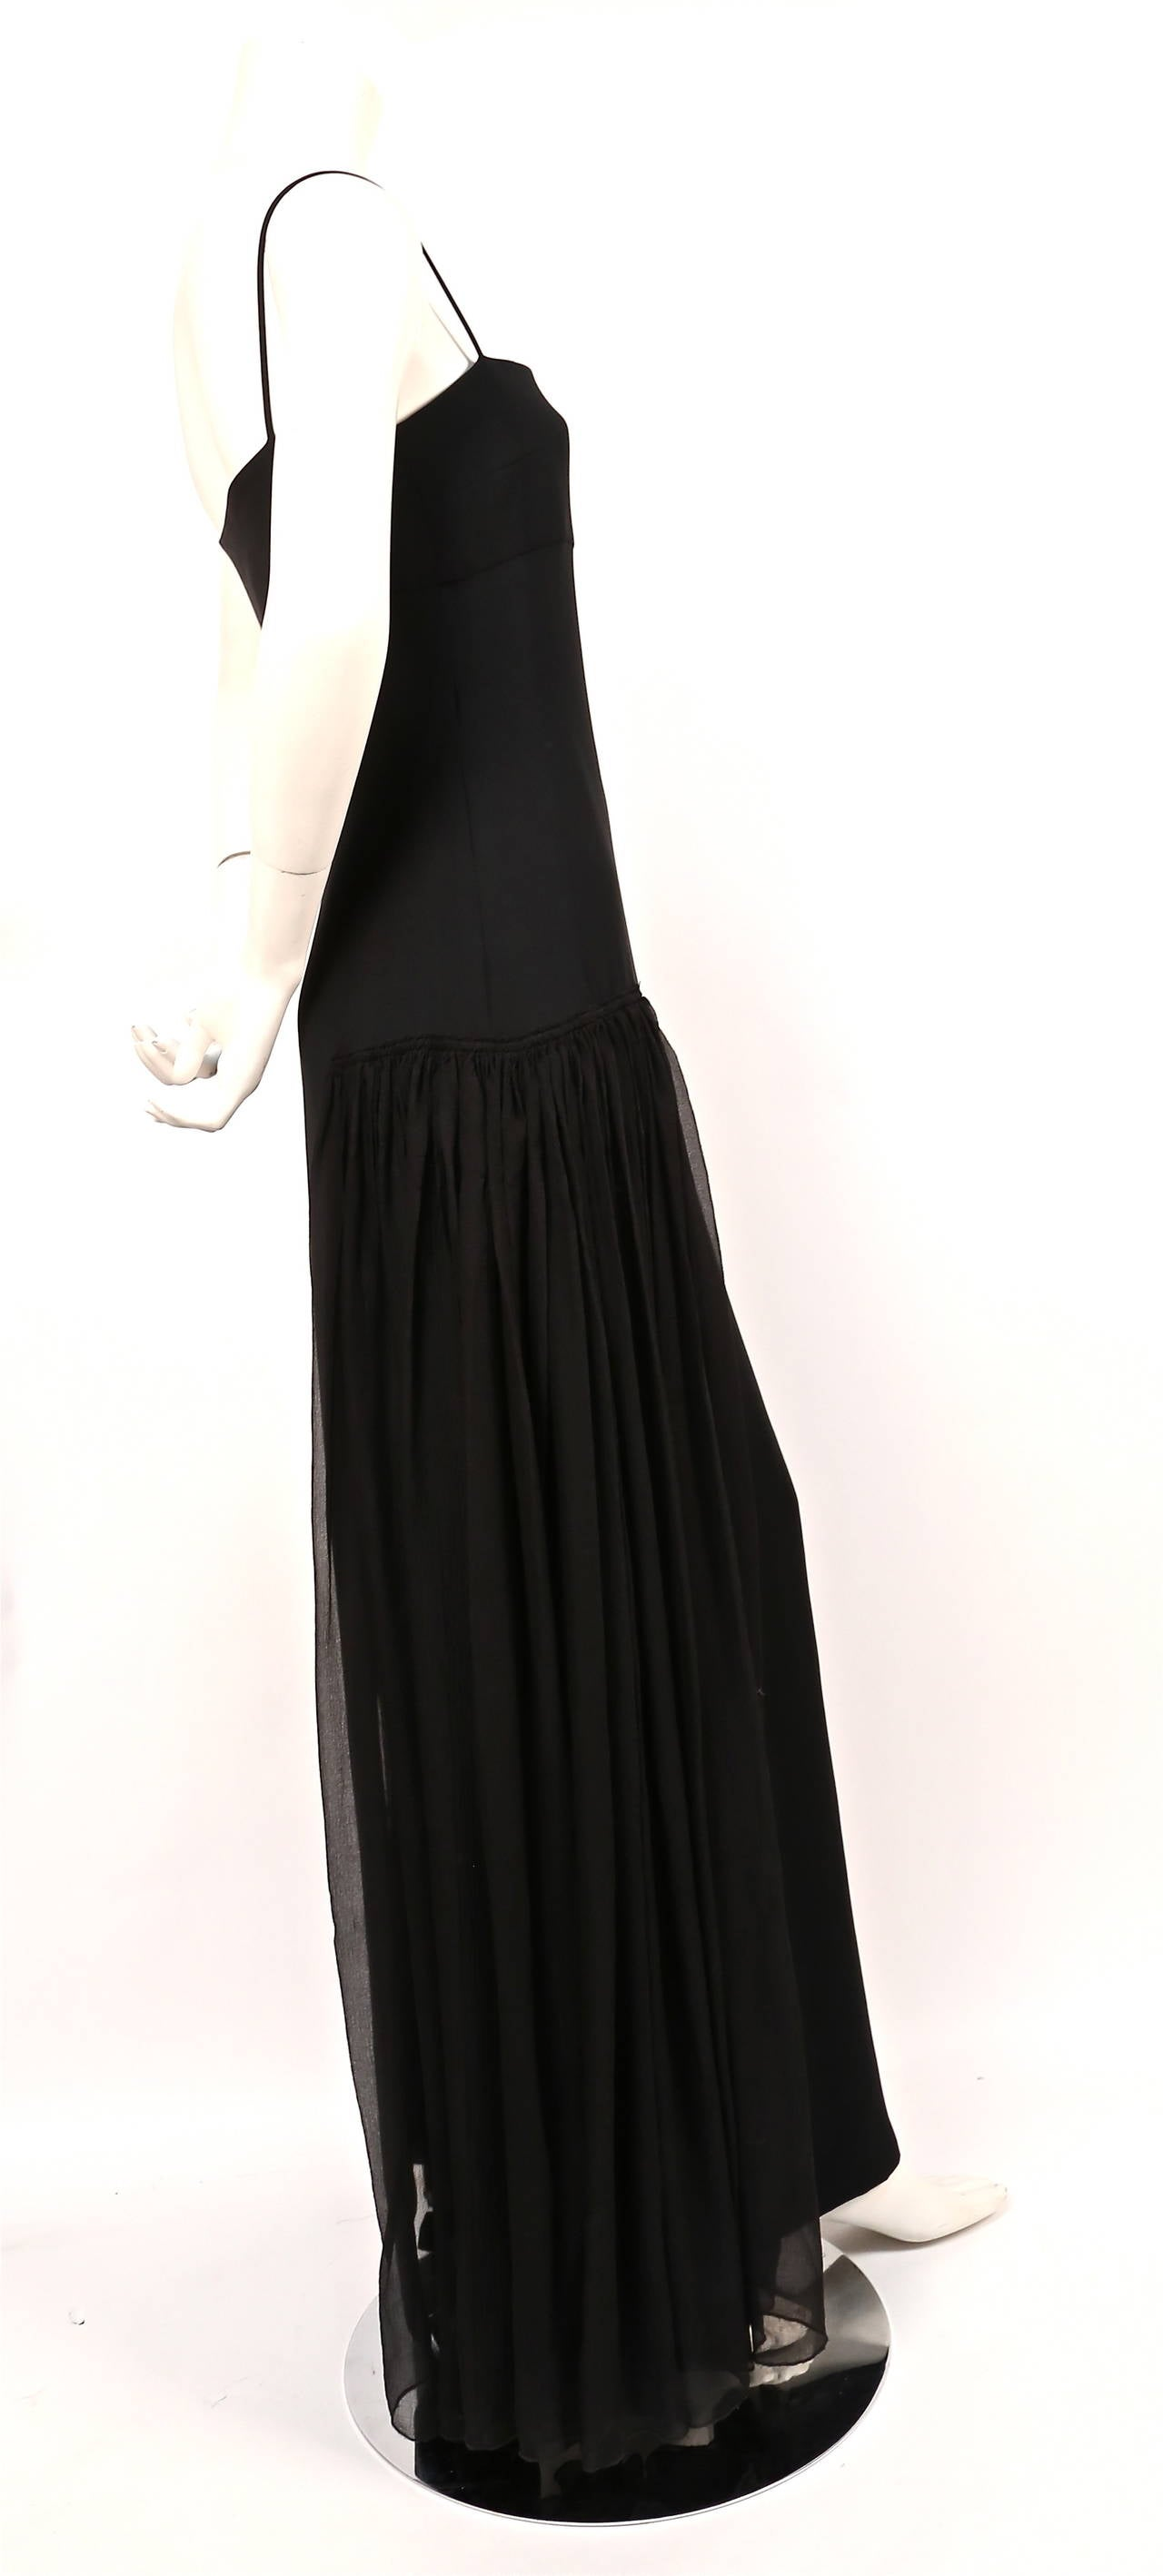 1998 BALENCIAGA 'le dix' by Nicolas Ghesquière black gown with sheer panels 2